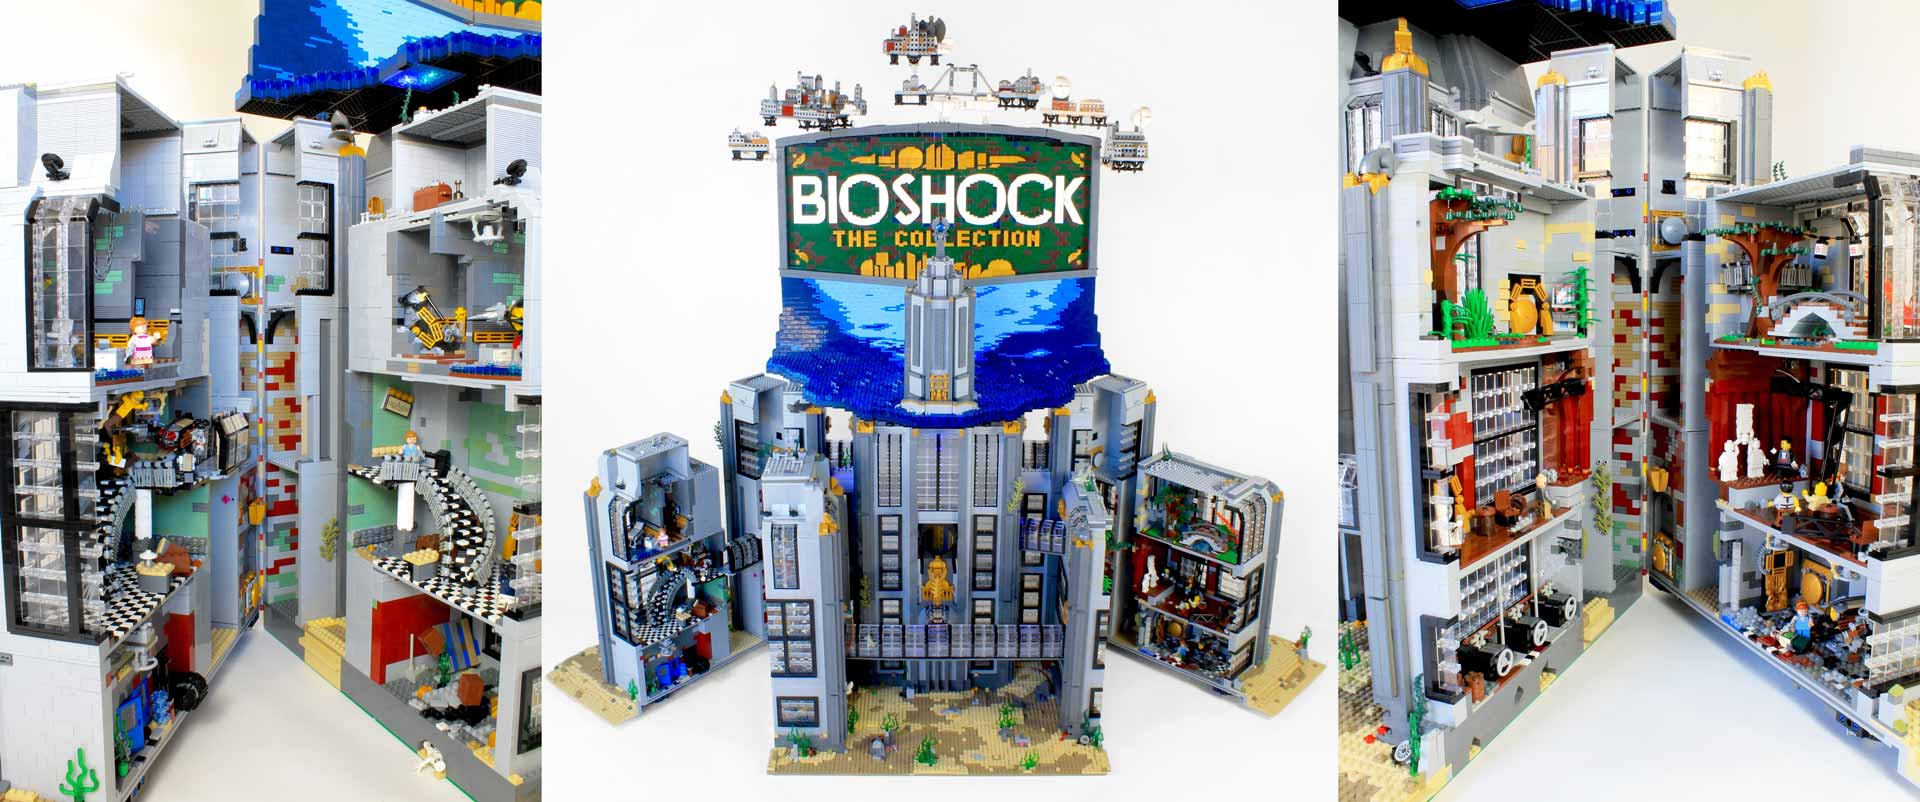 bioshock-build-blog-2